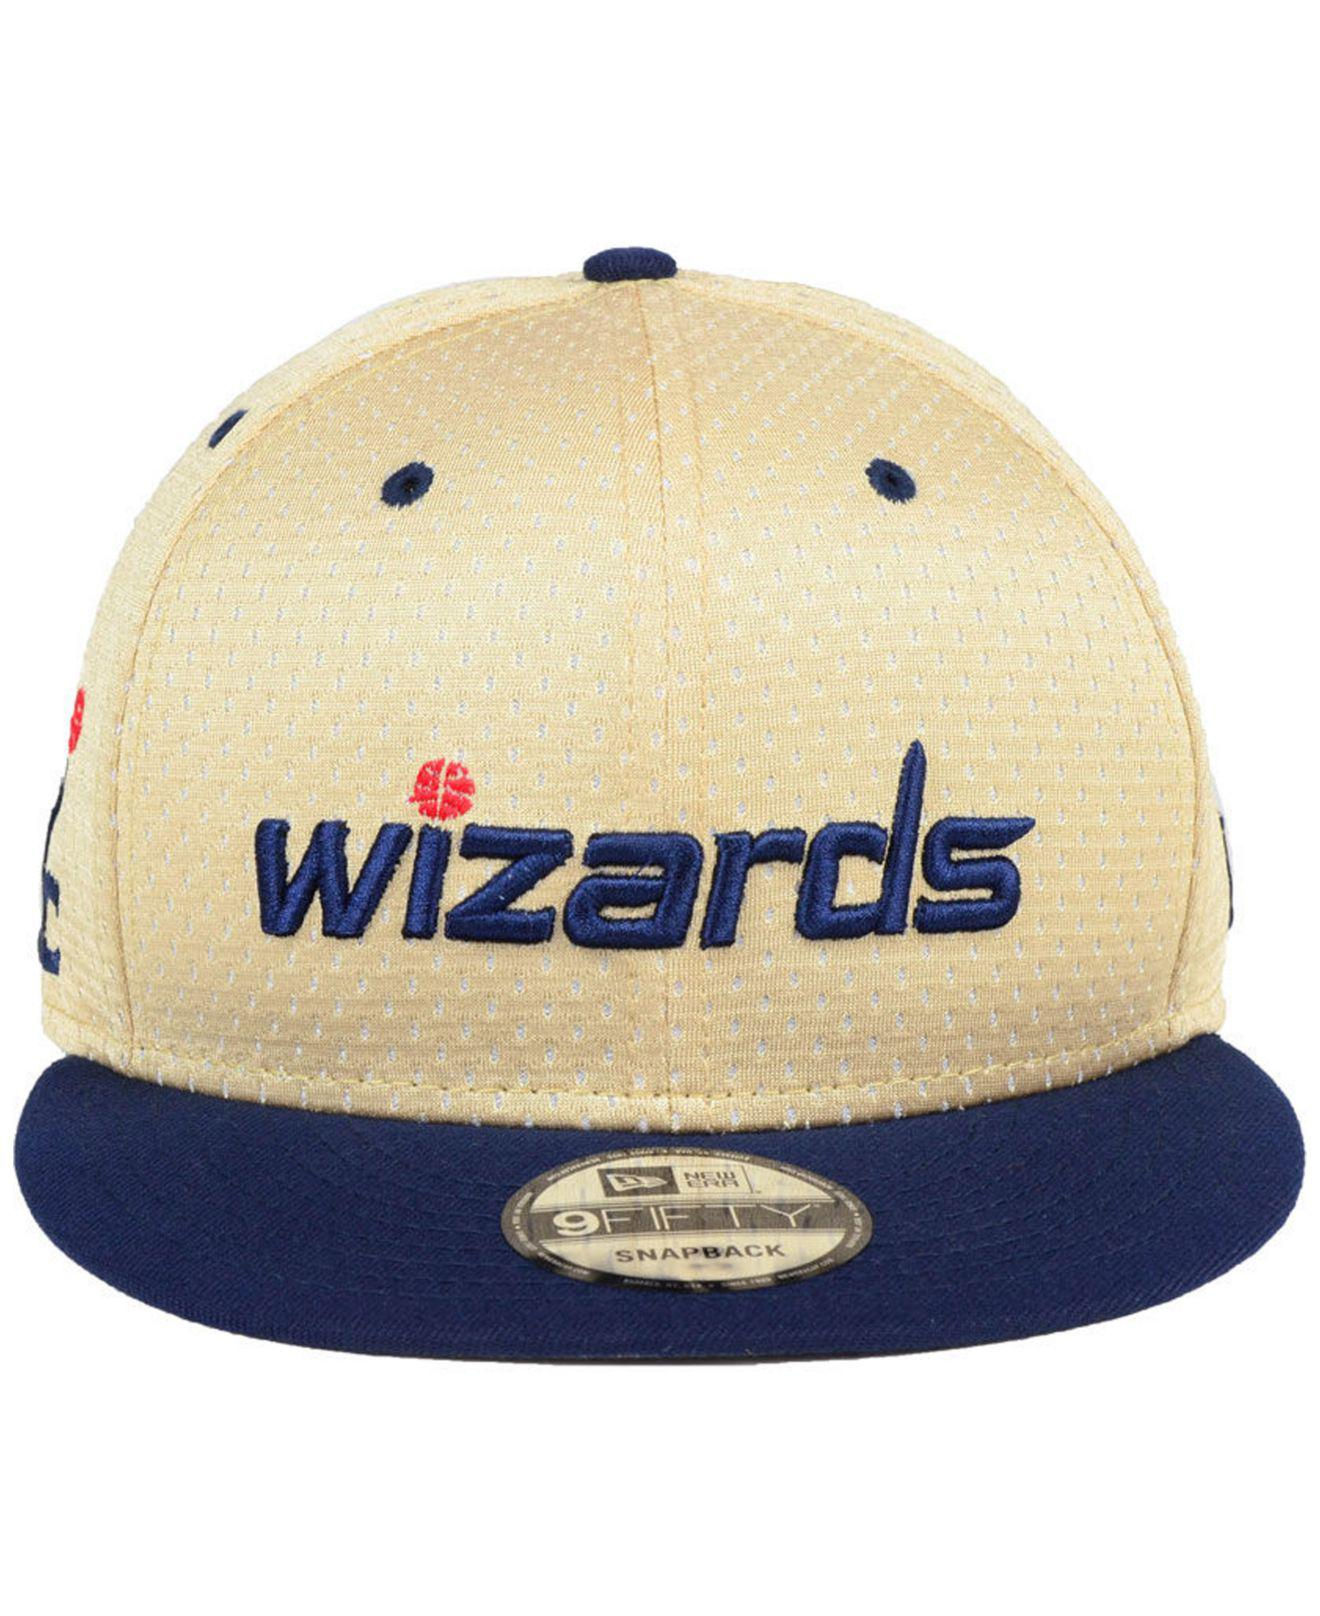 a2ce0ec3f7f2e Lyst - KTZ Washington Wizards Champagne 9fifty Snapback Cap in Blue ...